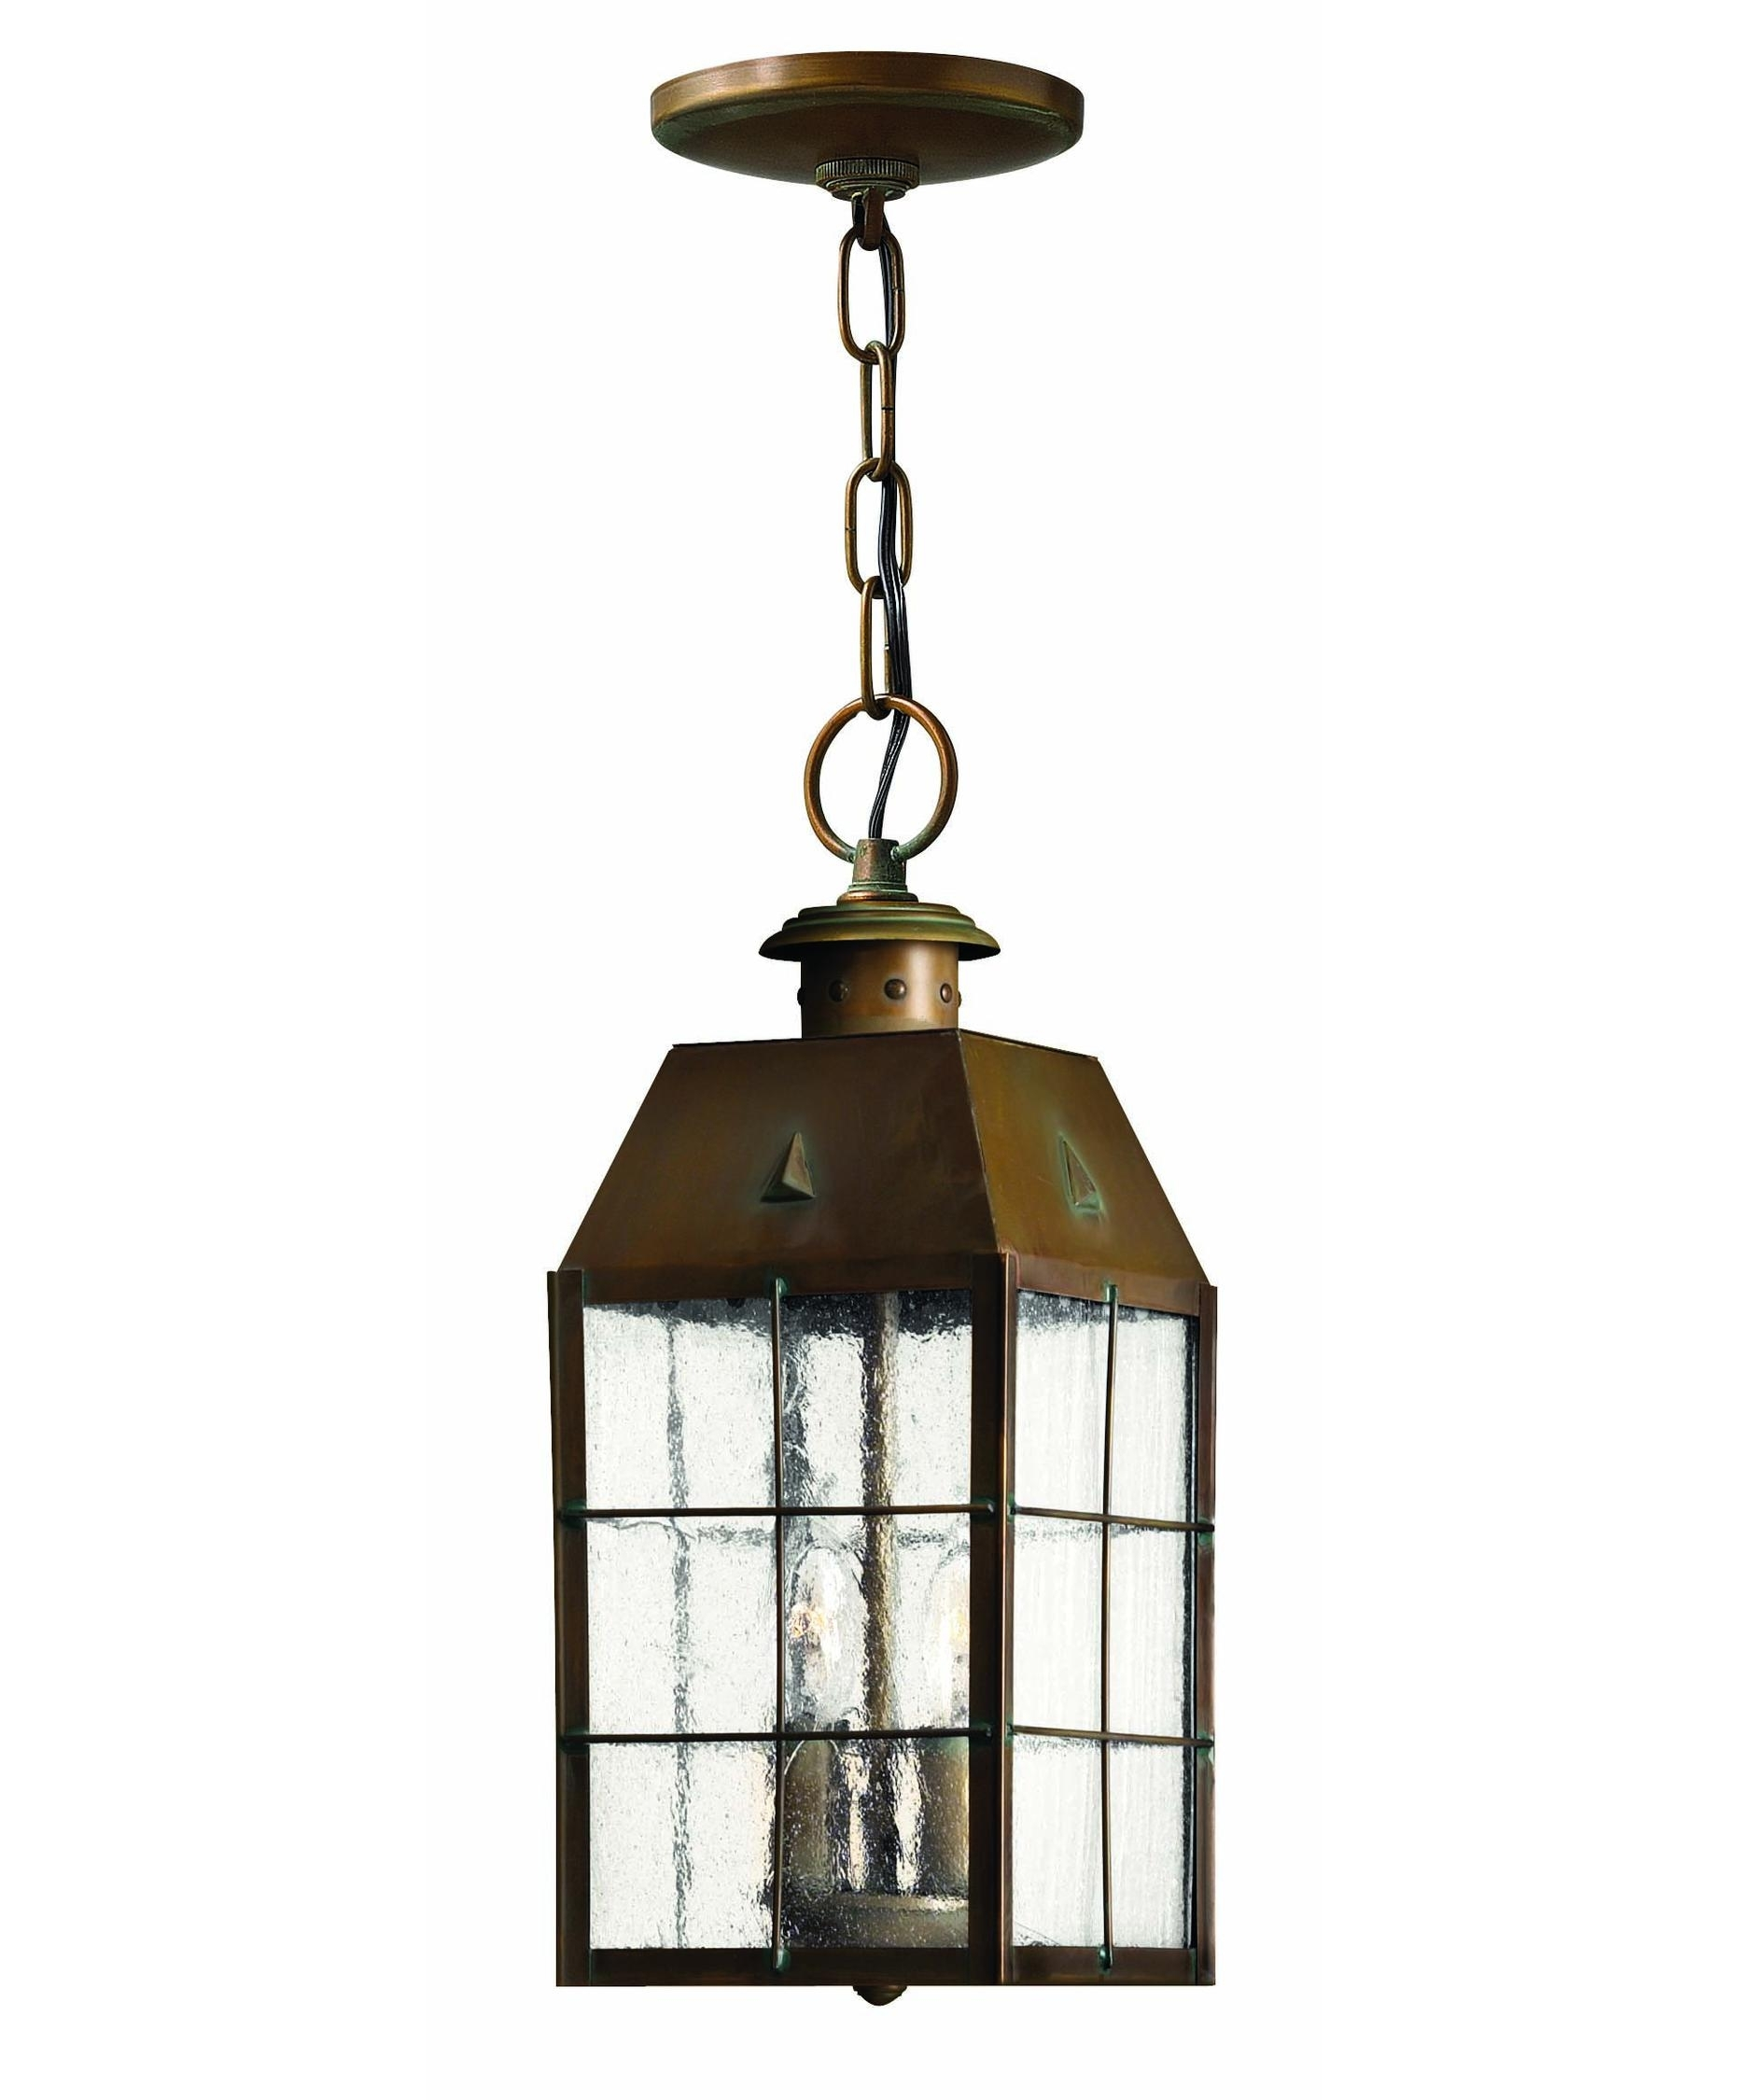 Hinkley Lighting 2372 Nantucket 6 Inch Wide 2 Light Outdoor Hanging With Contemporary Hanging Porch Hinkley Lighting (View 2 of 15)